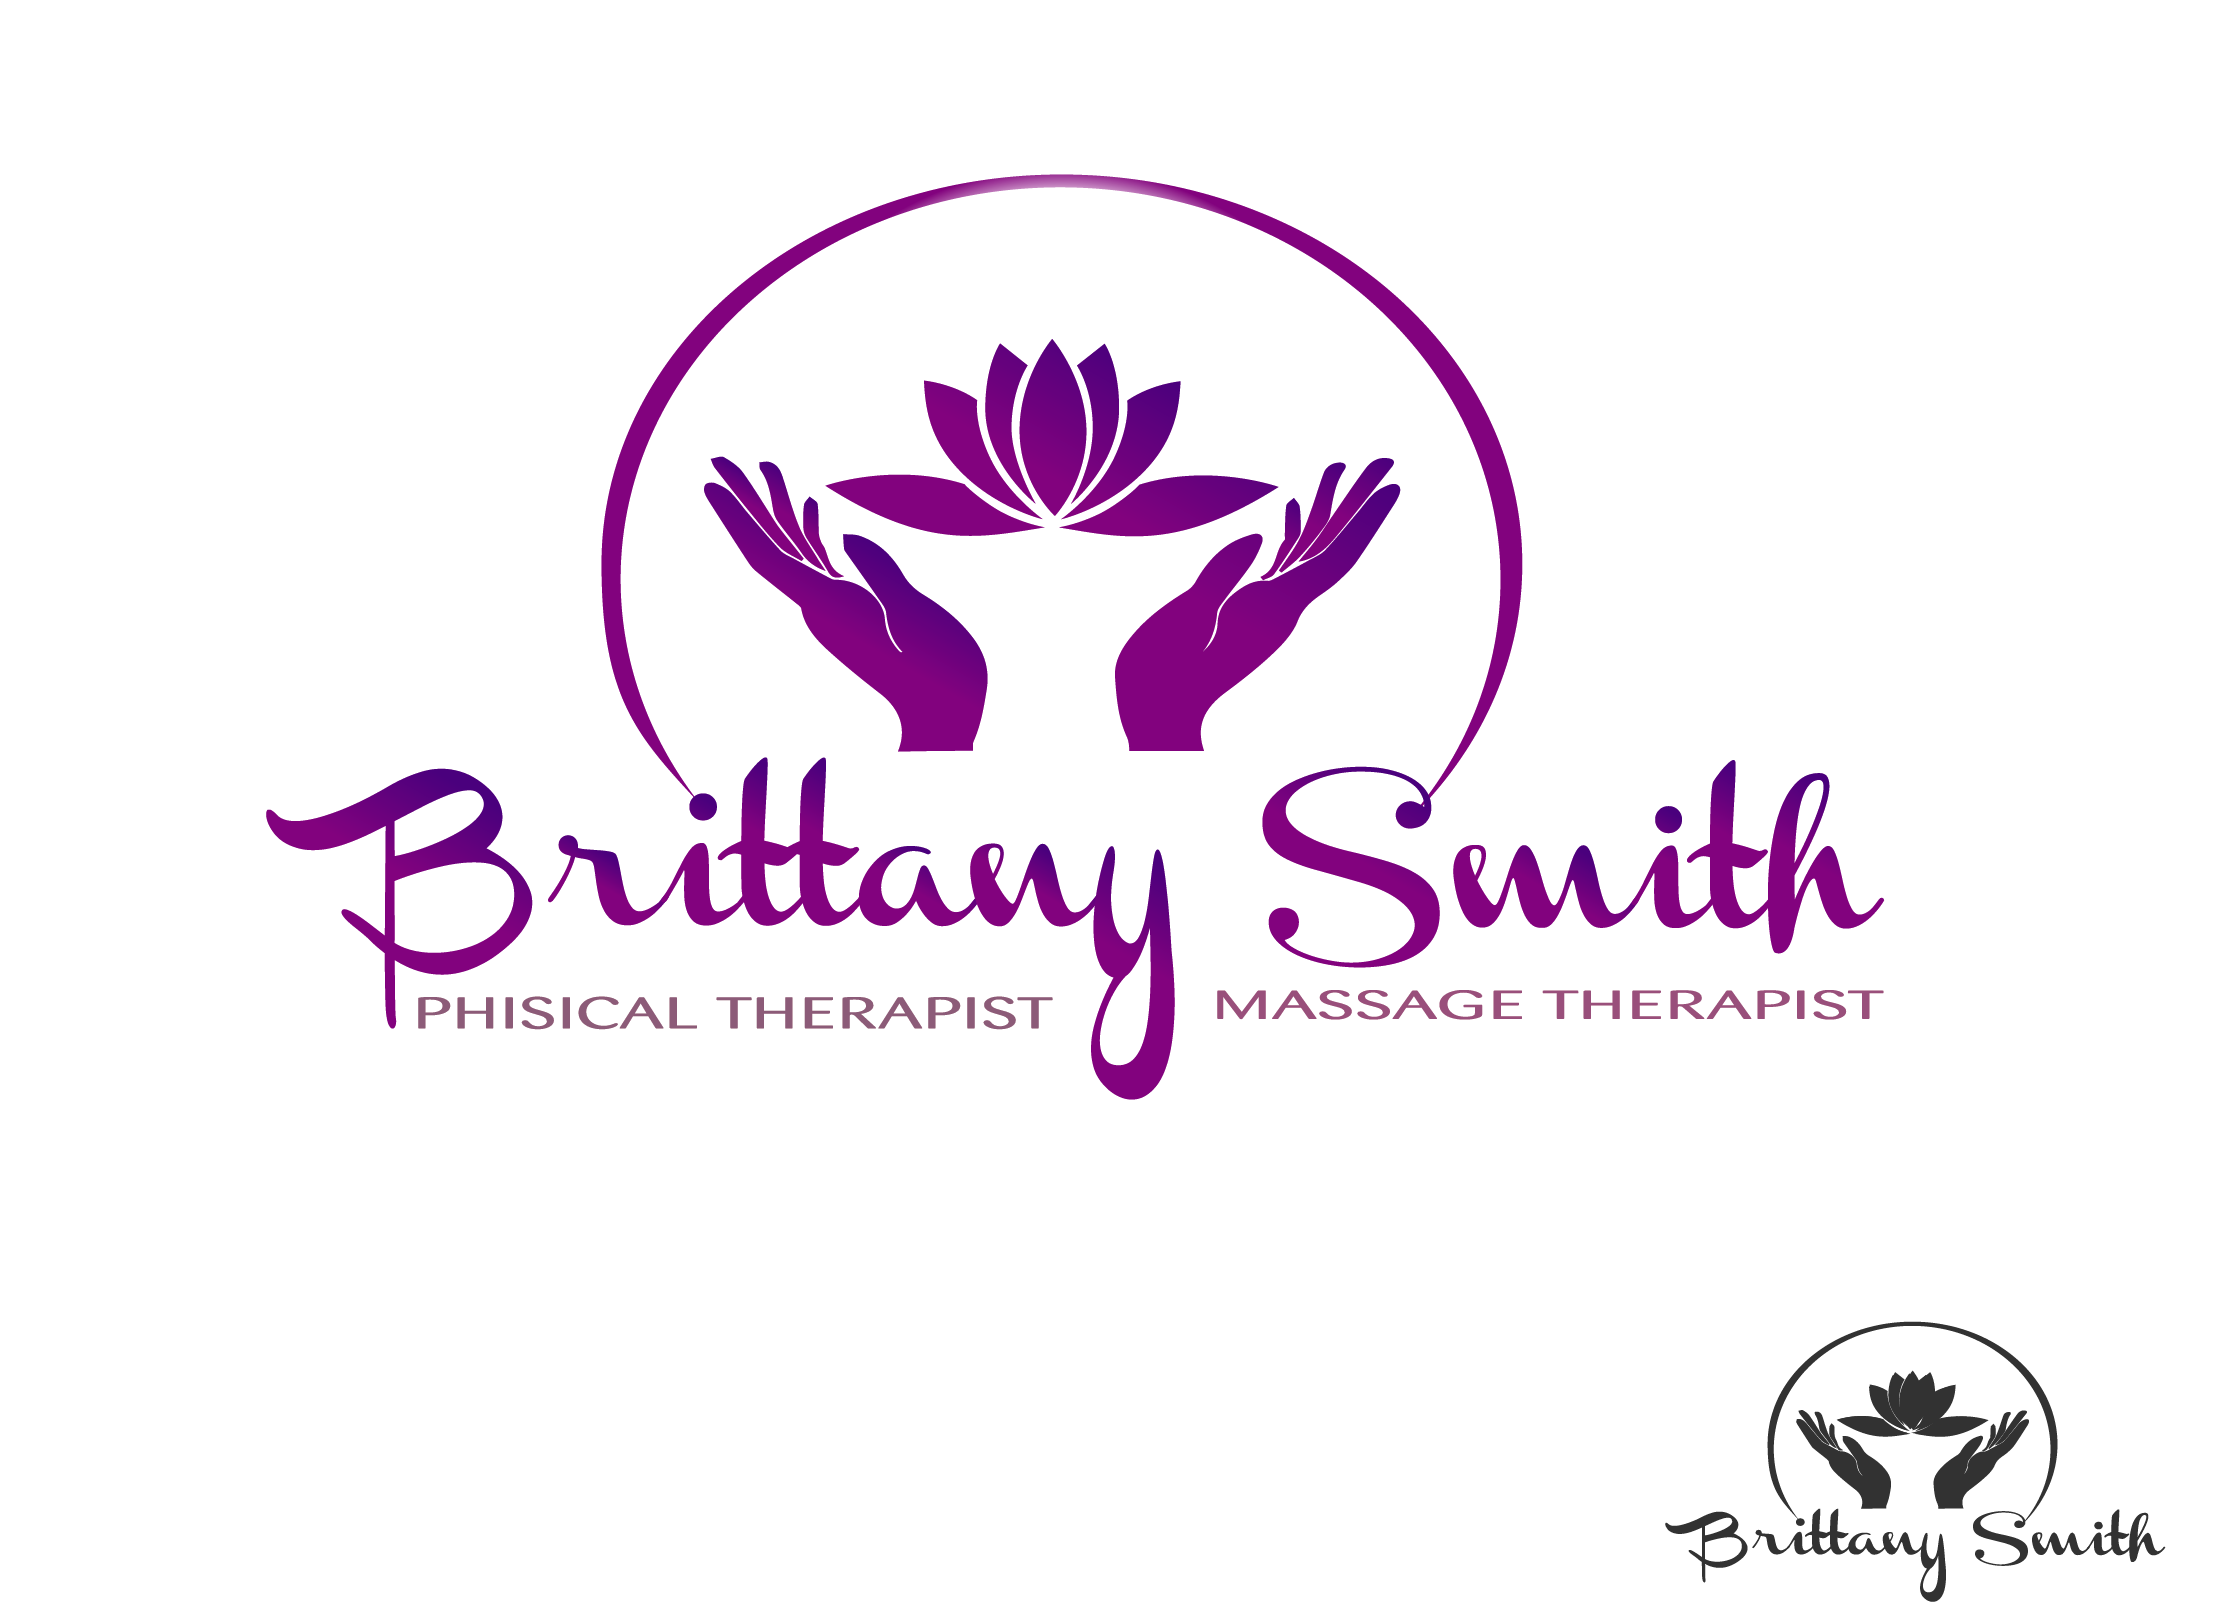 Logo Design by Maninder pal Singh - Entry No. 42 in the Logo Design Contest Artistic Logo Design for my personal massage therapy business.